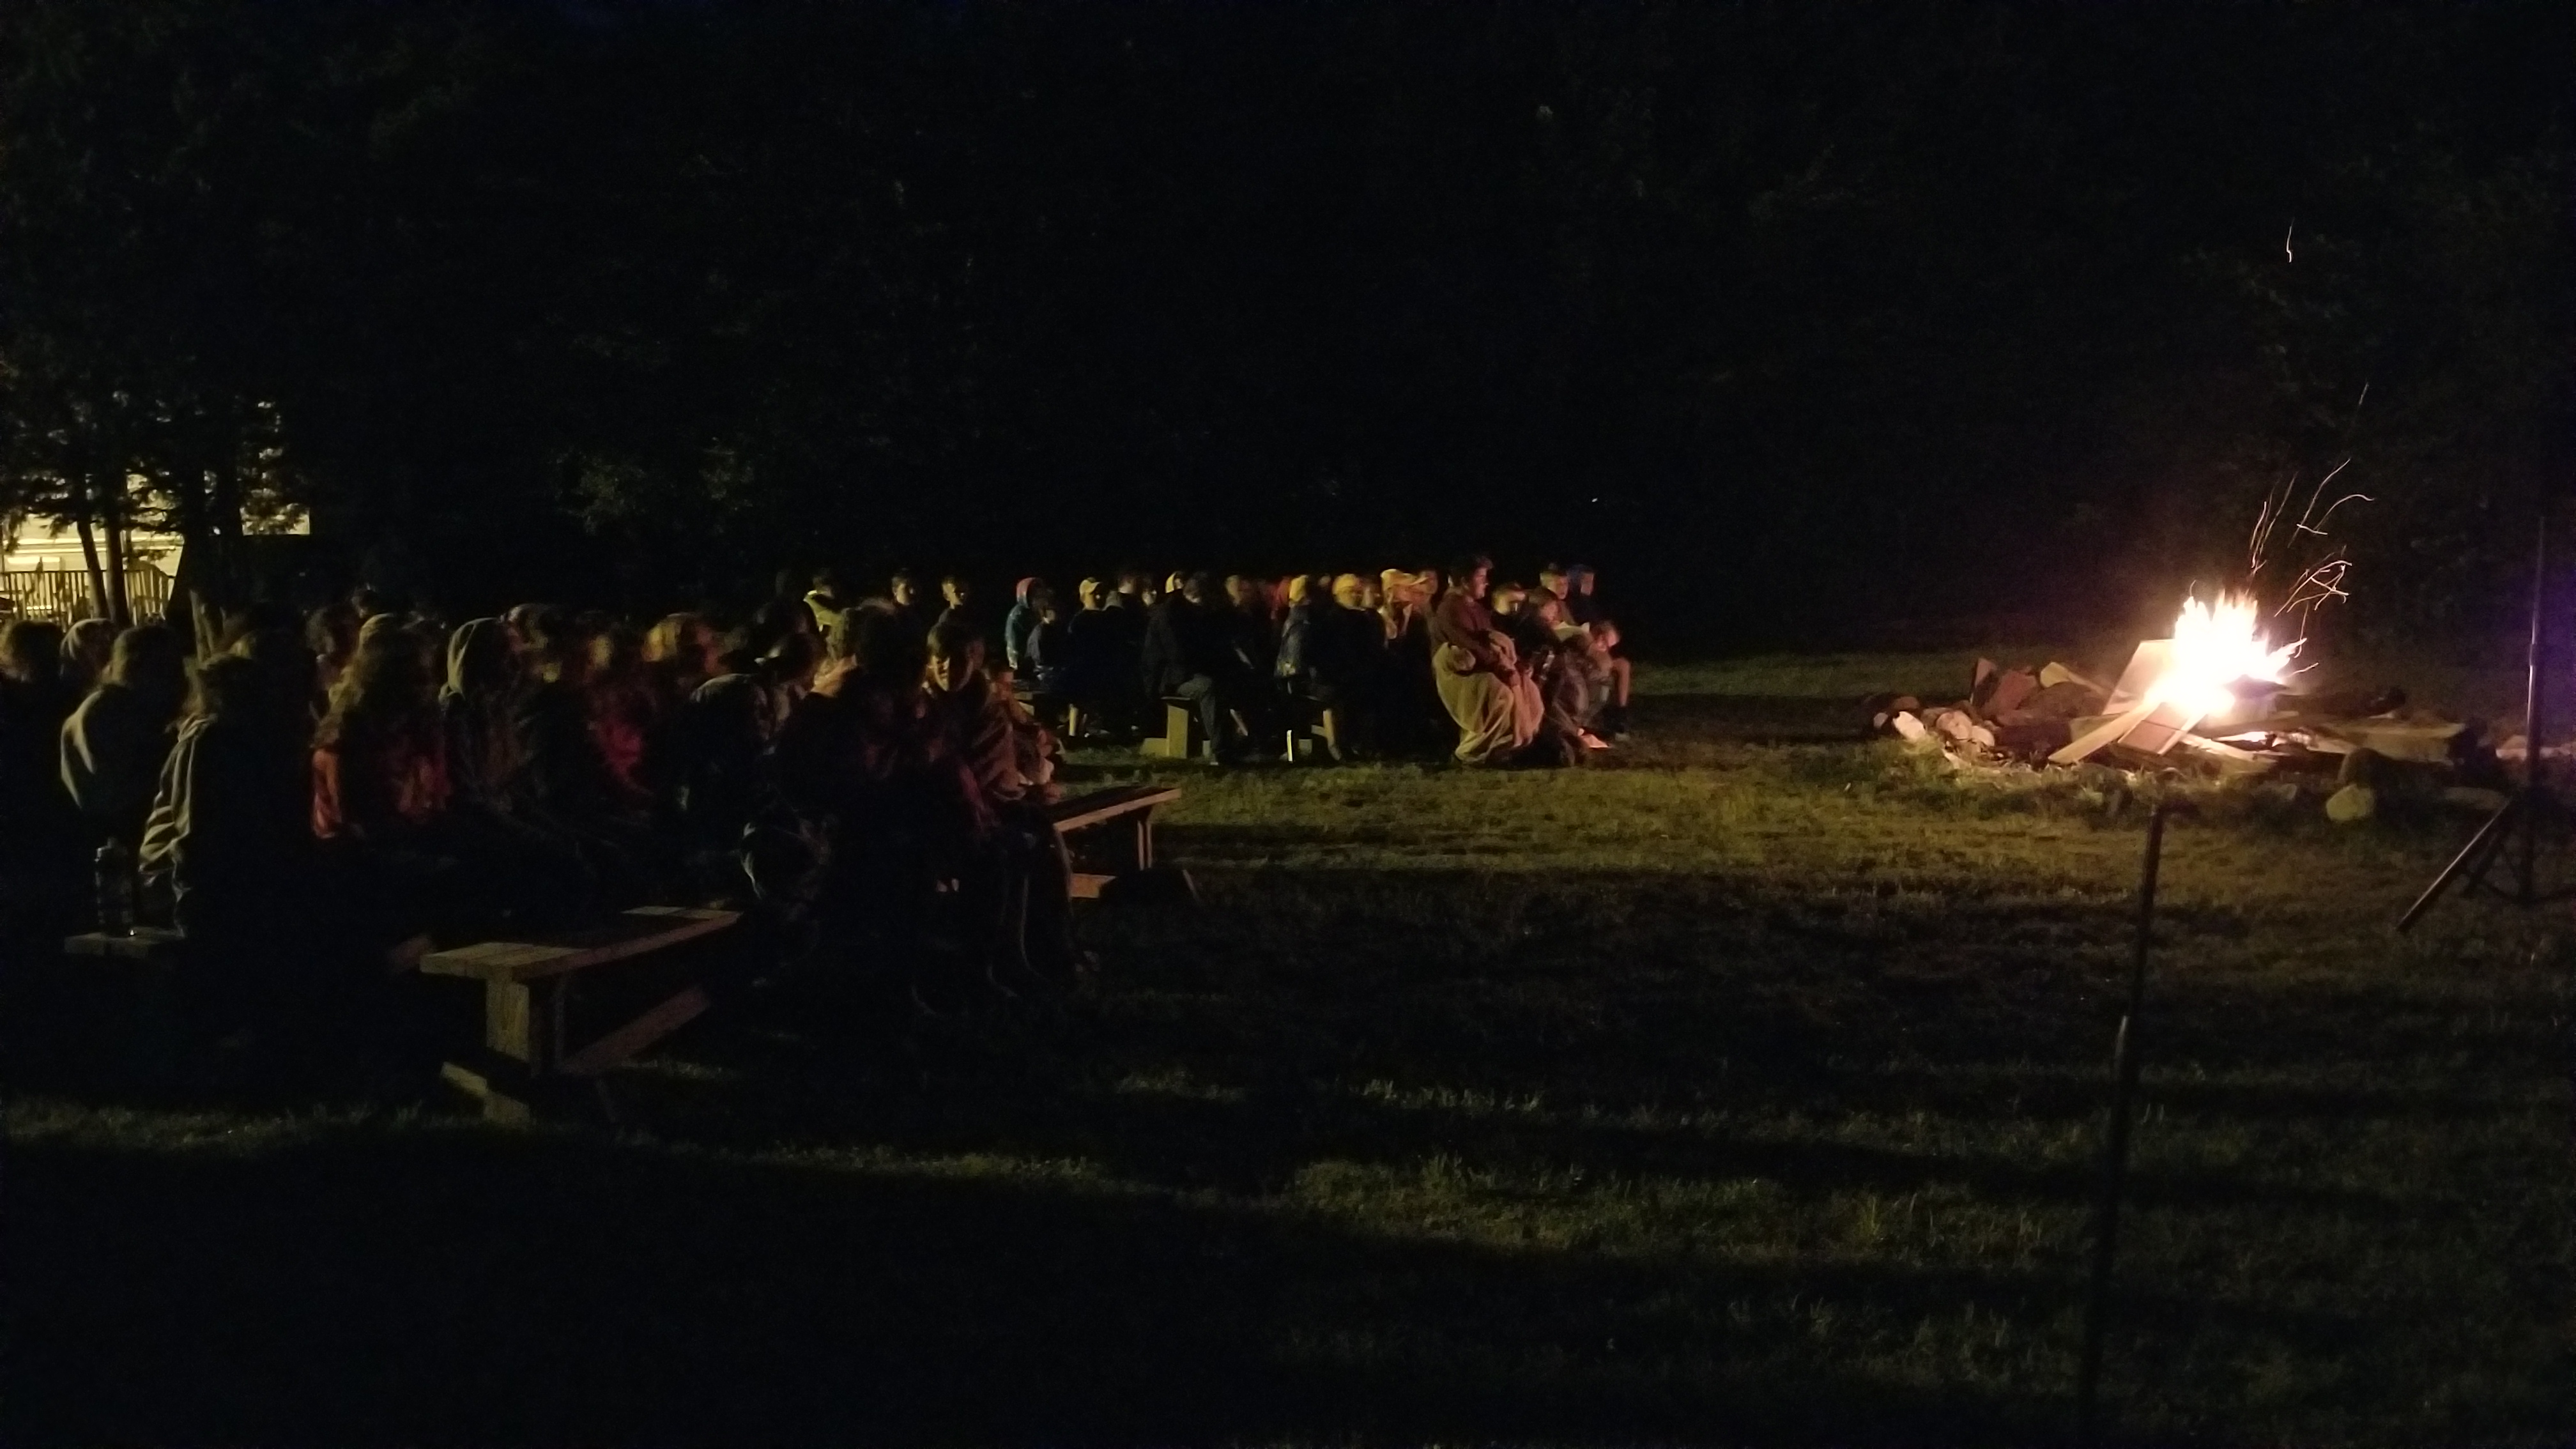 The Friday Evening Campfire Service is always powerful. So many Campers gave tear-filled testimonies of abuse, abandonment, brokenness. A bunch professed faith in Christ!!! A very sobering and powerful service.